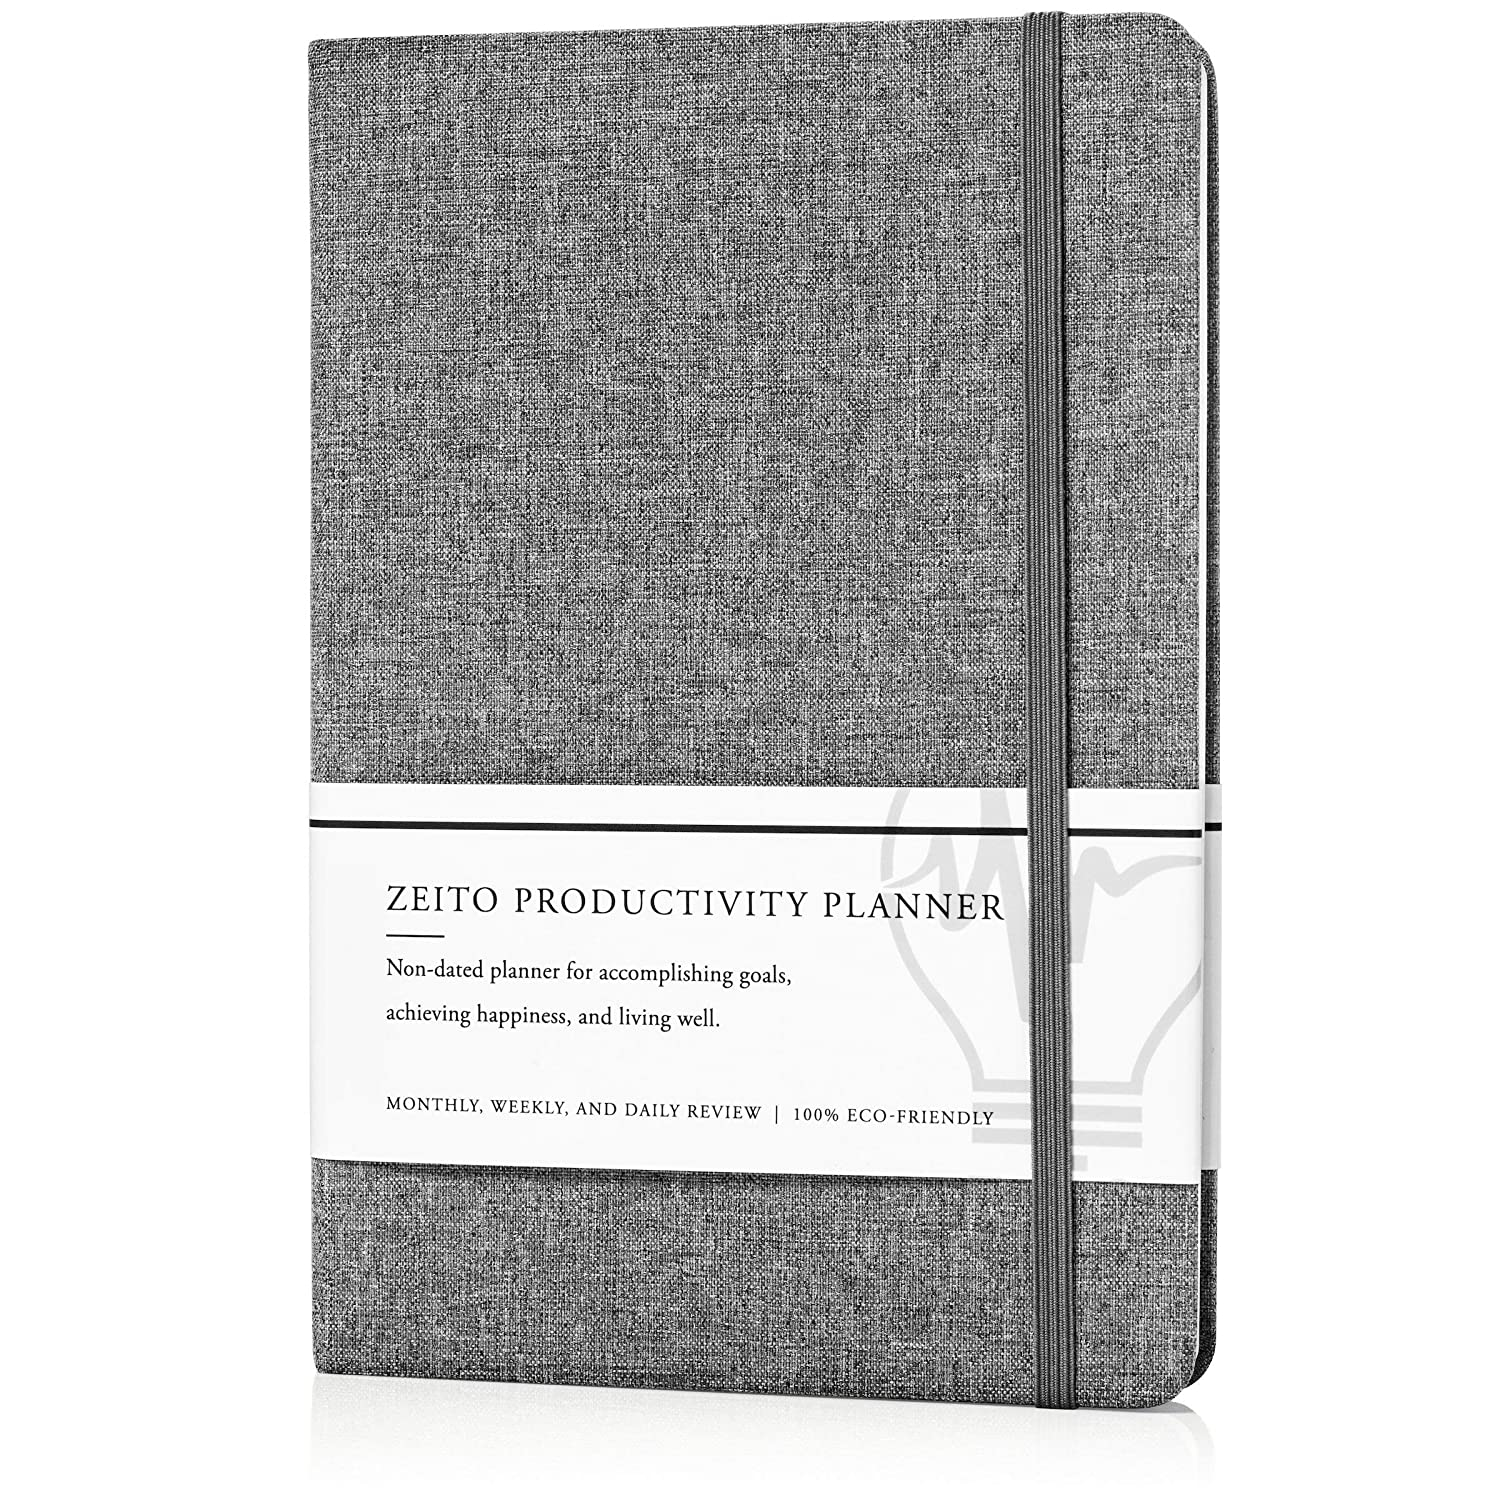 Zeito Productivity Planner - Best Undated Monthly, Weekly, and Daily Agenda Planner for Increasing Motivation, Accomplishing Goals, and Living Well in ...